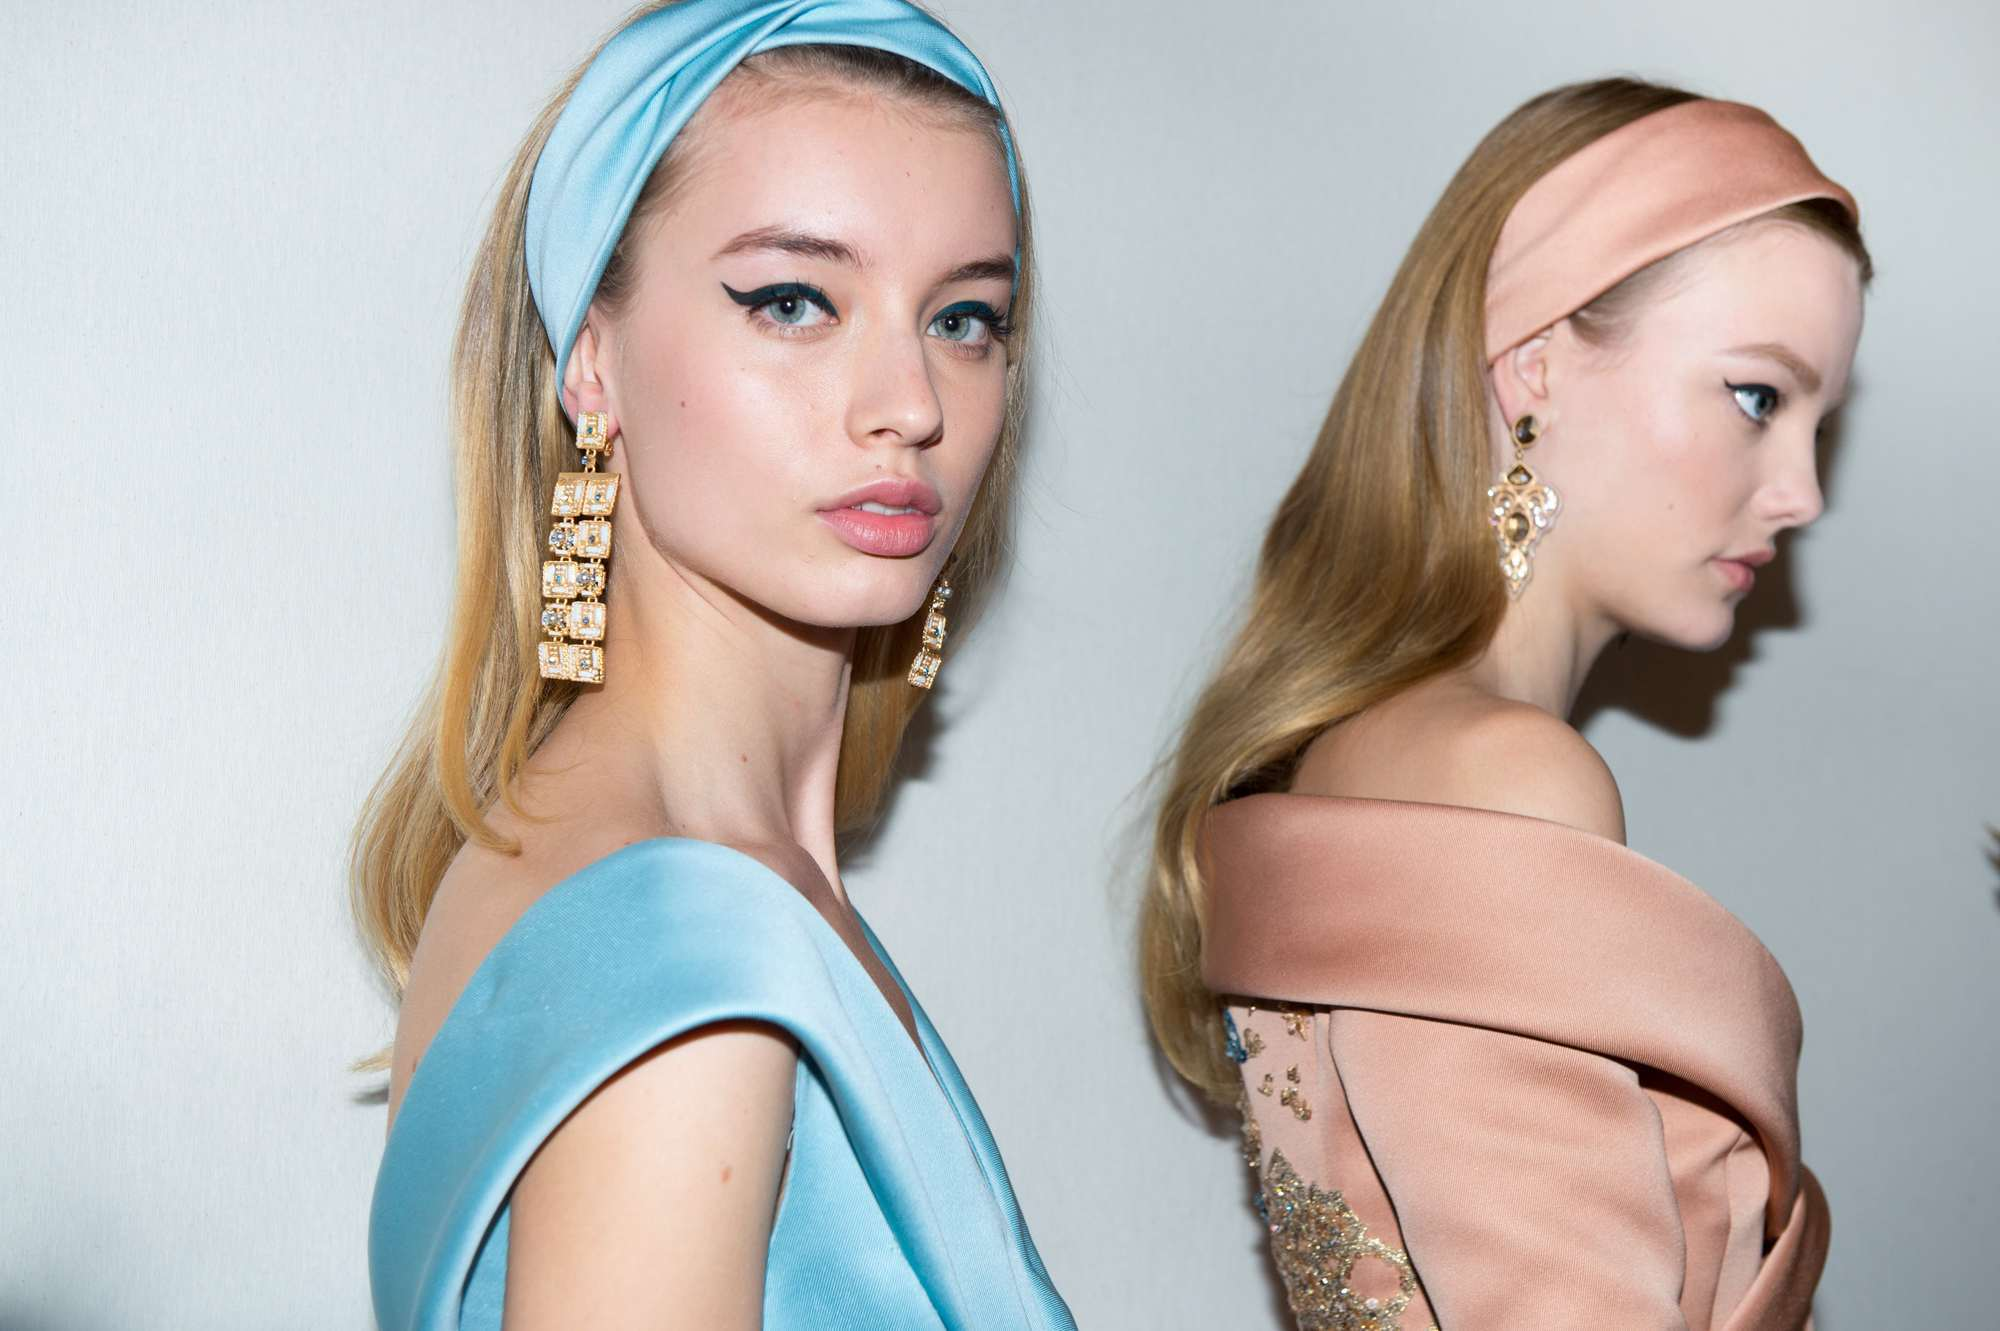 Headband and bandana hairstyles: Two models backstage at Elie Saab runway with golden blonde hair with loose waves wearing pastel coloured headband and dresses